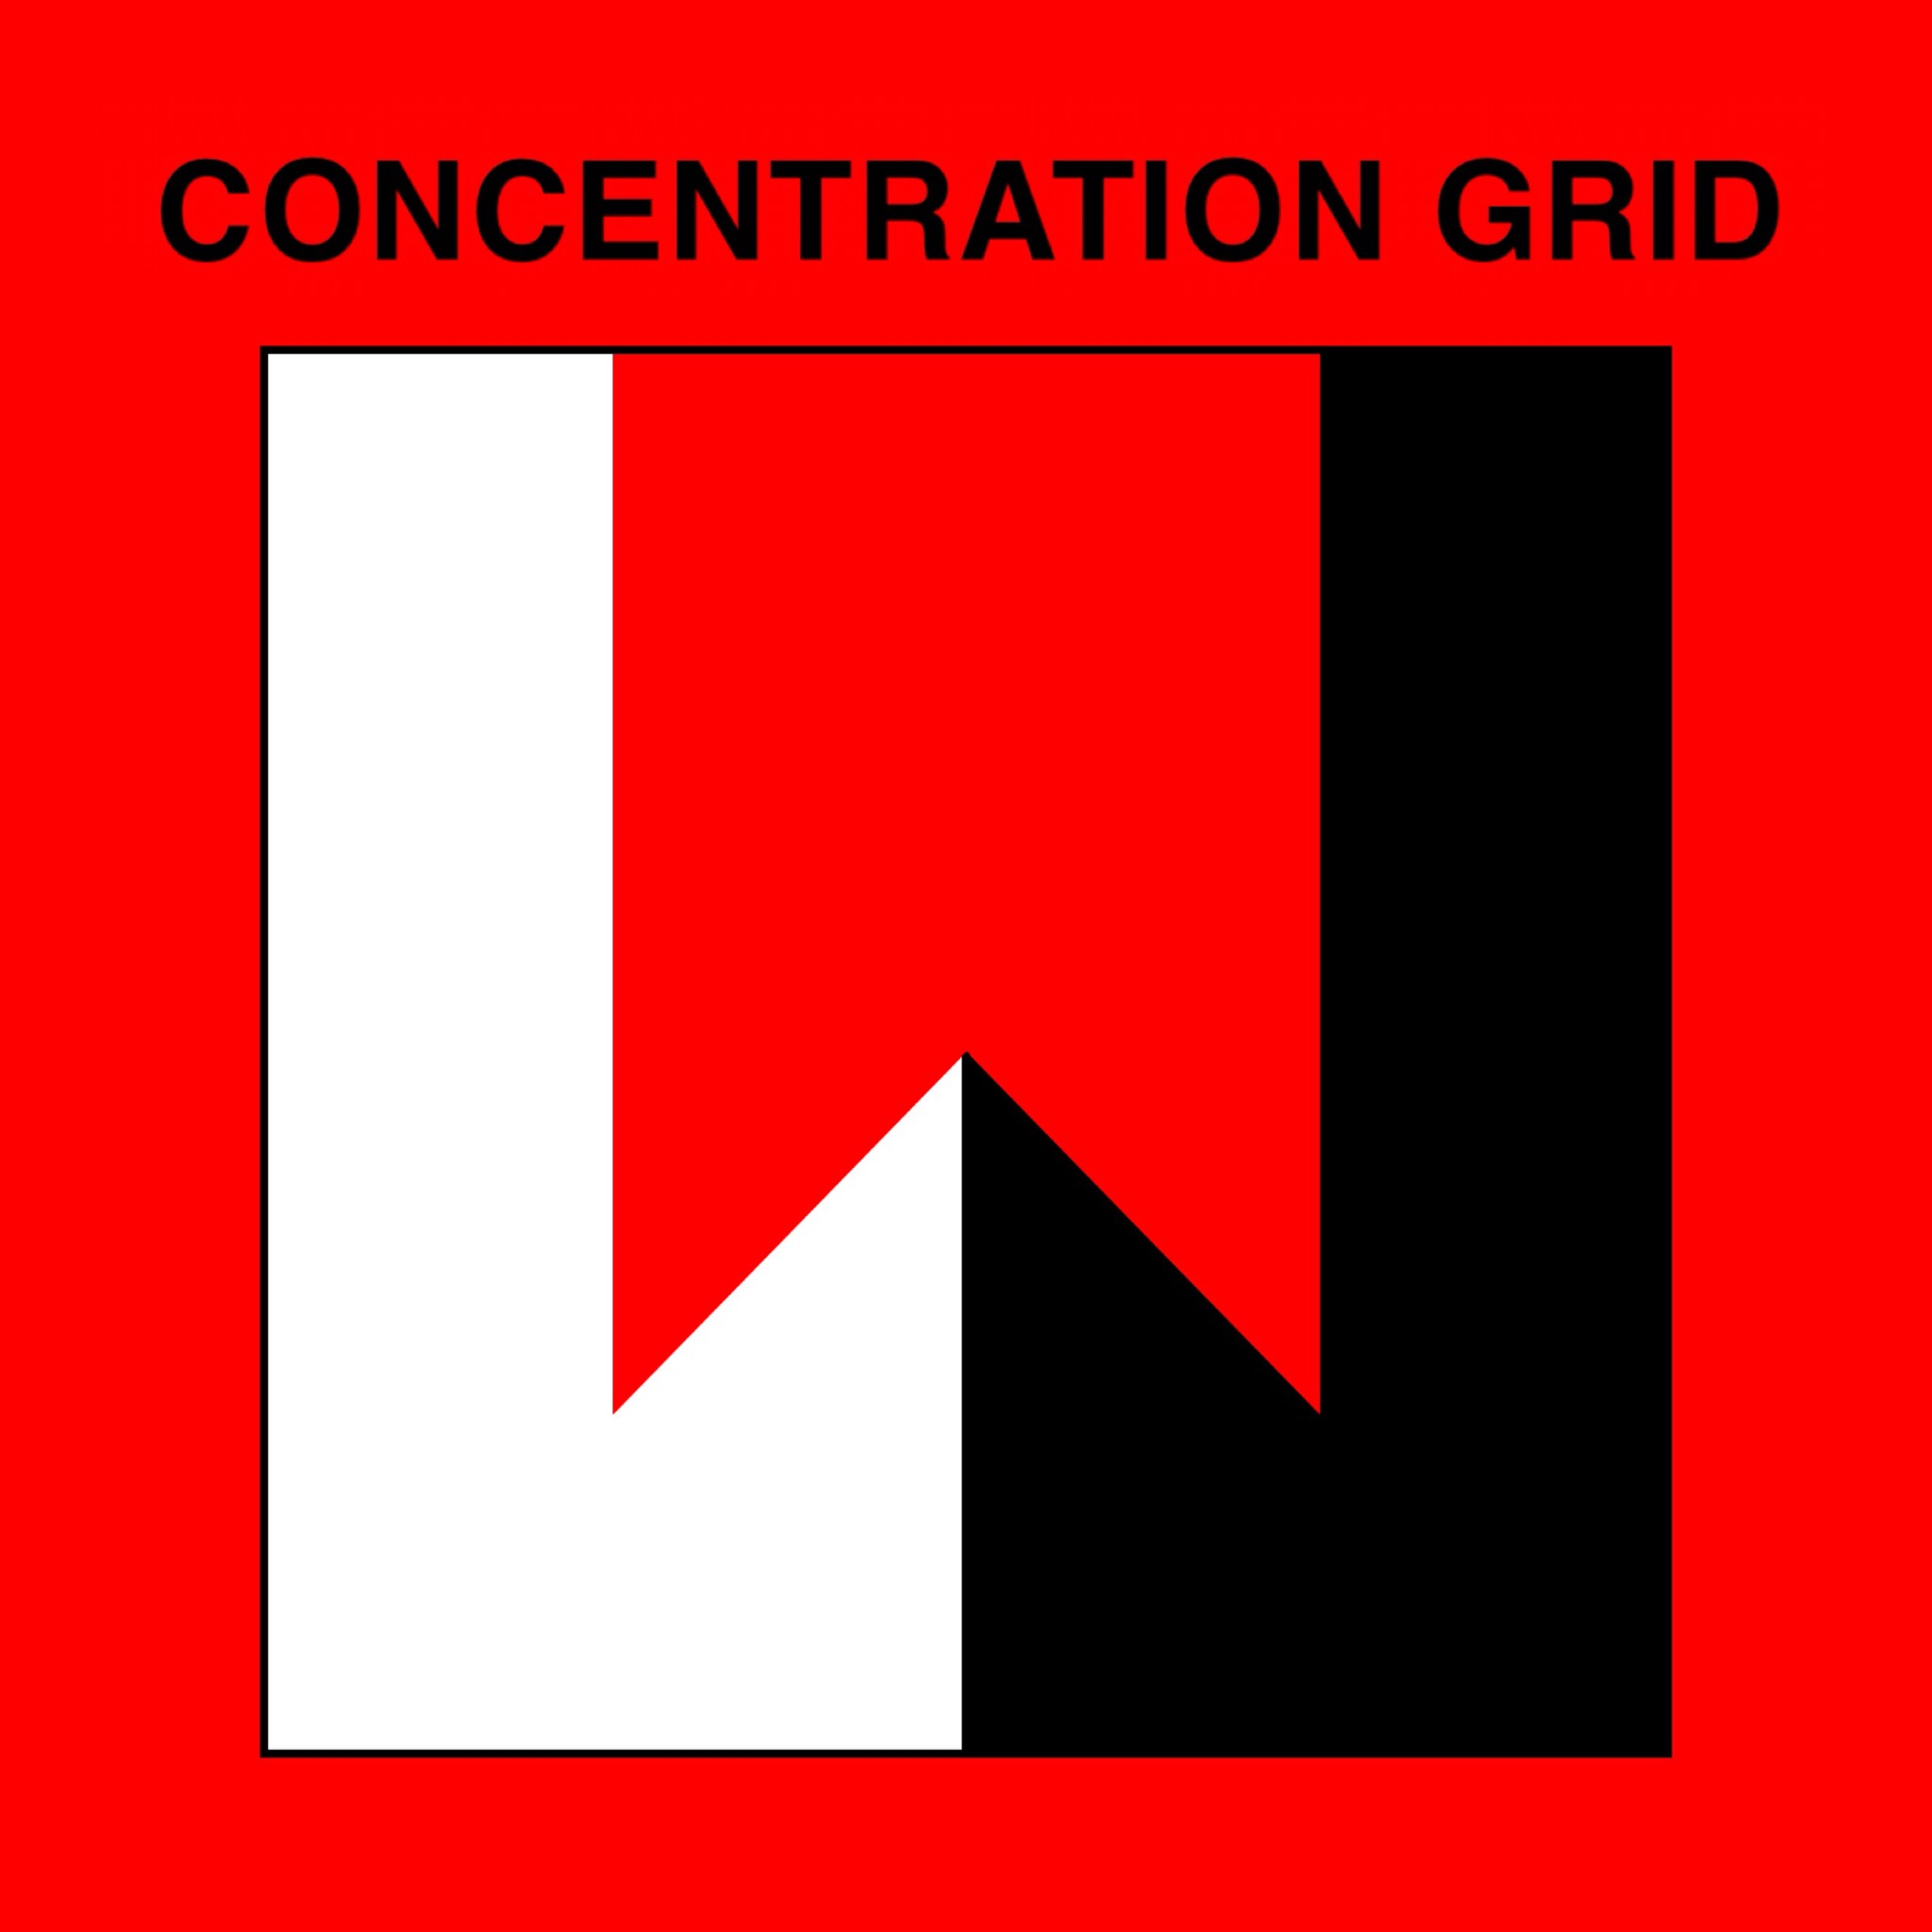 Concentration Grid is a mental skills training exercise/app for students, athletes, coaches, sports performance/psychology professionals, trainers, teachers, parents, etc. Use concentration grids a/k/a mental focus grids with student-athletes as a tool for assessment, practice and development of focus/attention skills ... and for competitive challenge and fun. Make self-development a daily habit. #challengeyourself #concentrationgrid